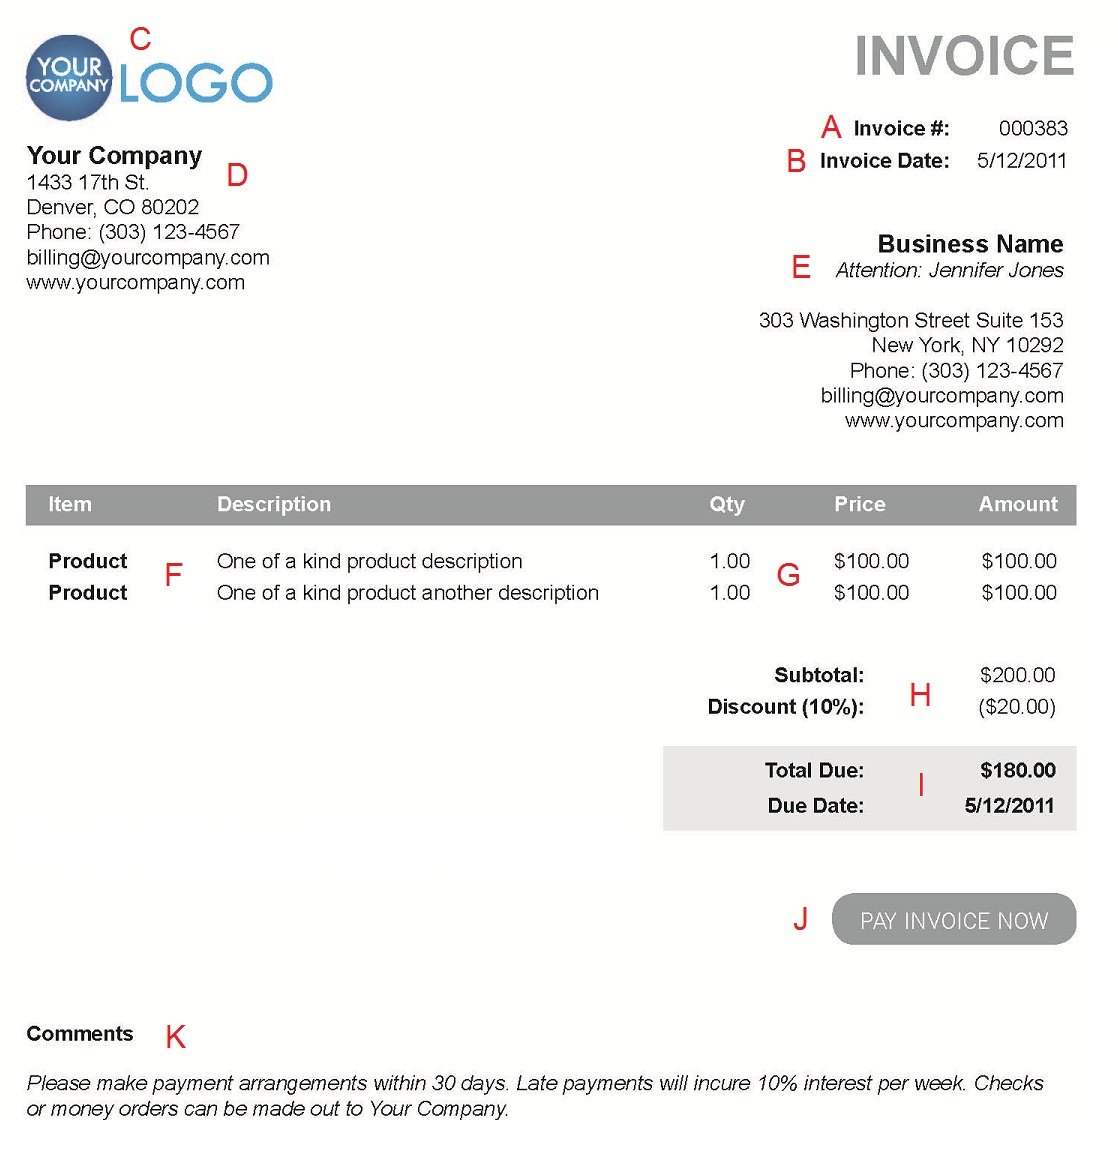 Indianaparanormalus  Inspiring The  Different Sections Of An Electronic Payment Invoice With Great A  With Easy On The Eye Read Receipt Outlook  Also Gas Receipt In Addition Definition Of Receipt And Receipt Sample As Well As Deposit Receipt Additionally Missouri Personal Property Tax Receipt From Paysimplecom With Indianaparanormalus  Great The  Different Sections Of An Electronic Payment Invoice With Easy On The Eye A  And Inspiring Read Receipt Outlook  Also Gas Receipt In Addition Definition Of Receipt From Paysimplecom